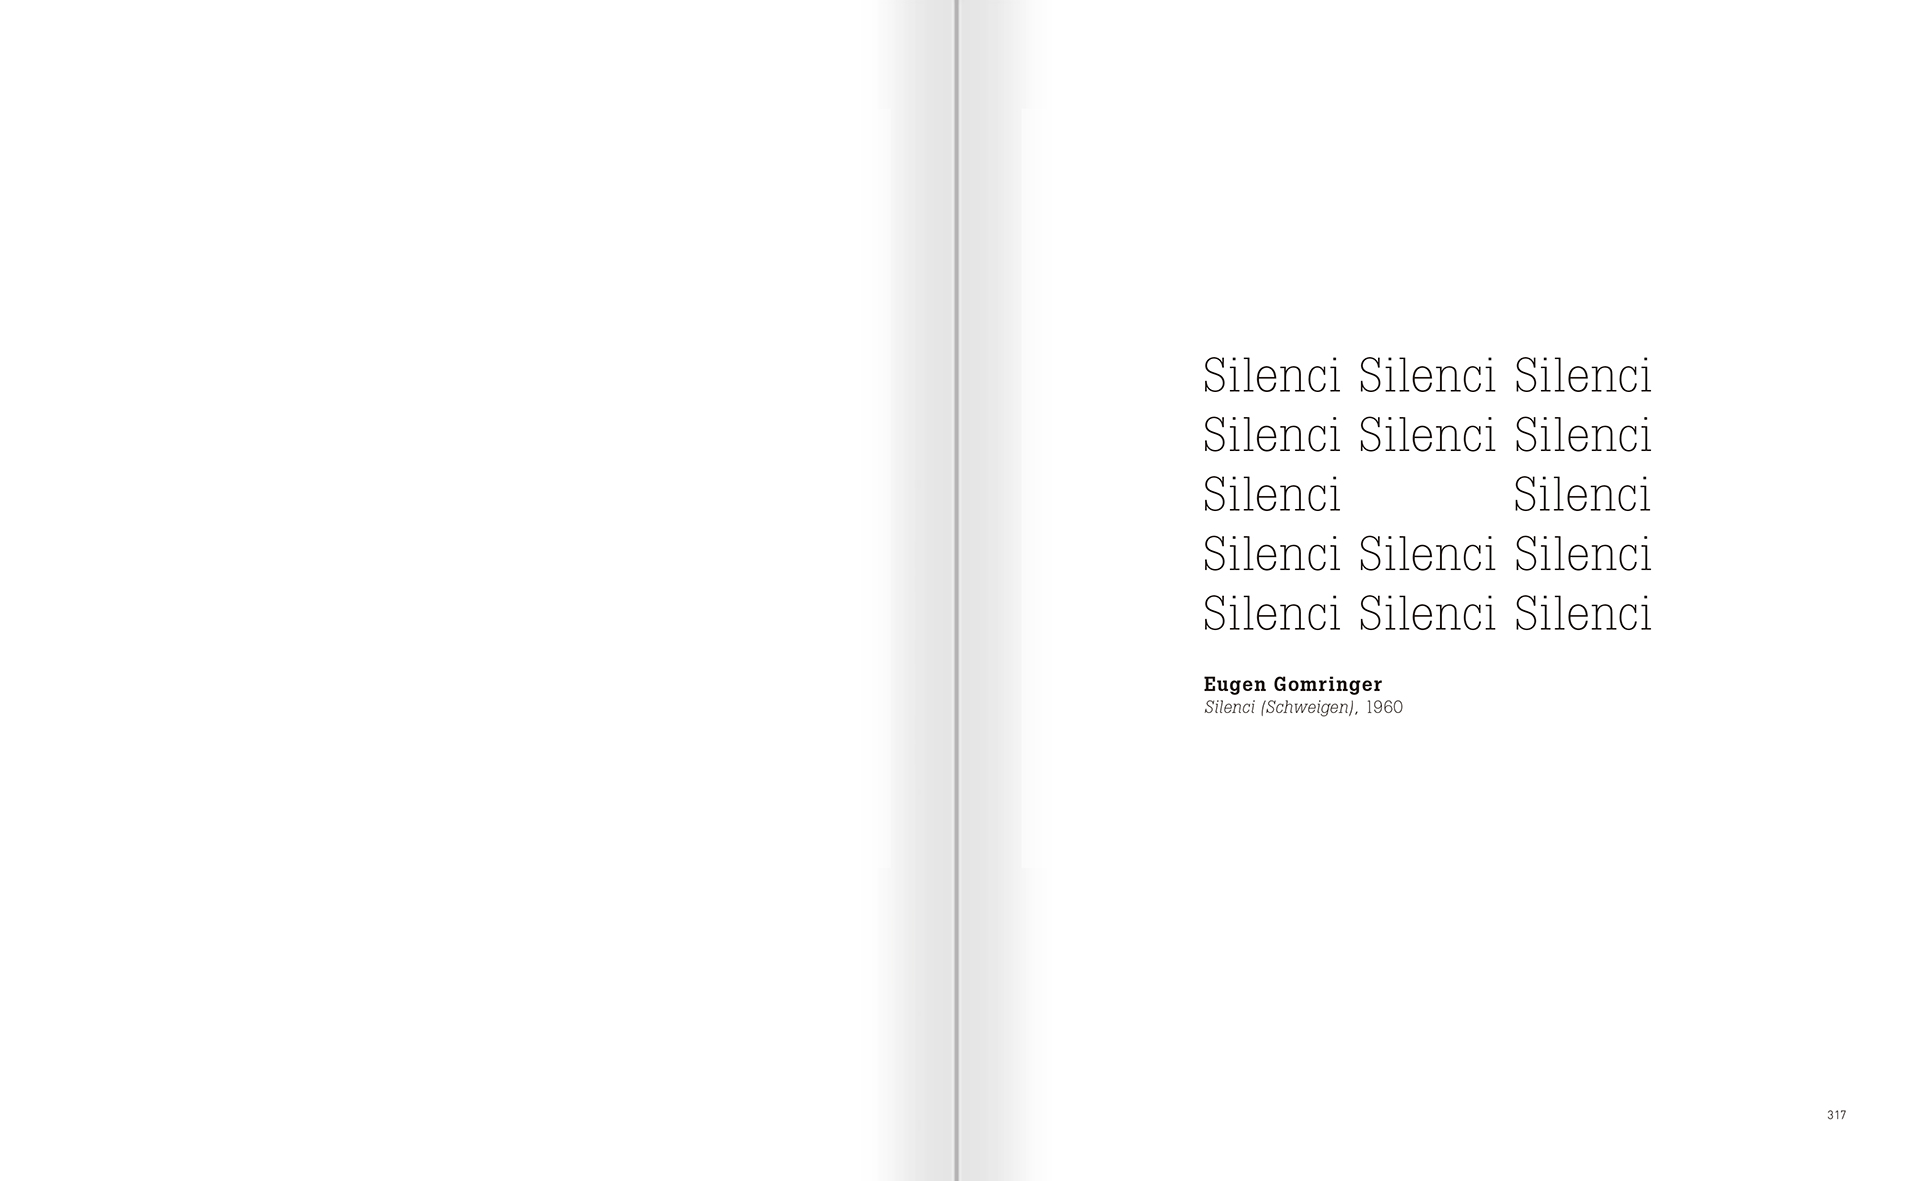 Selection from the catalogue 'Nancy Spero. Dissidances', pages 316 and 317